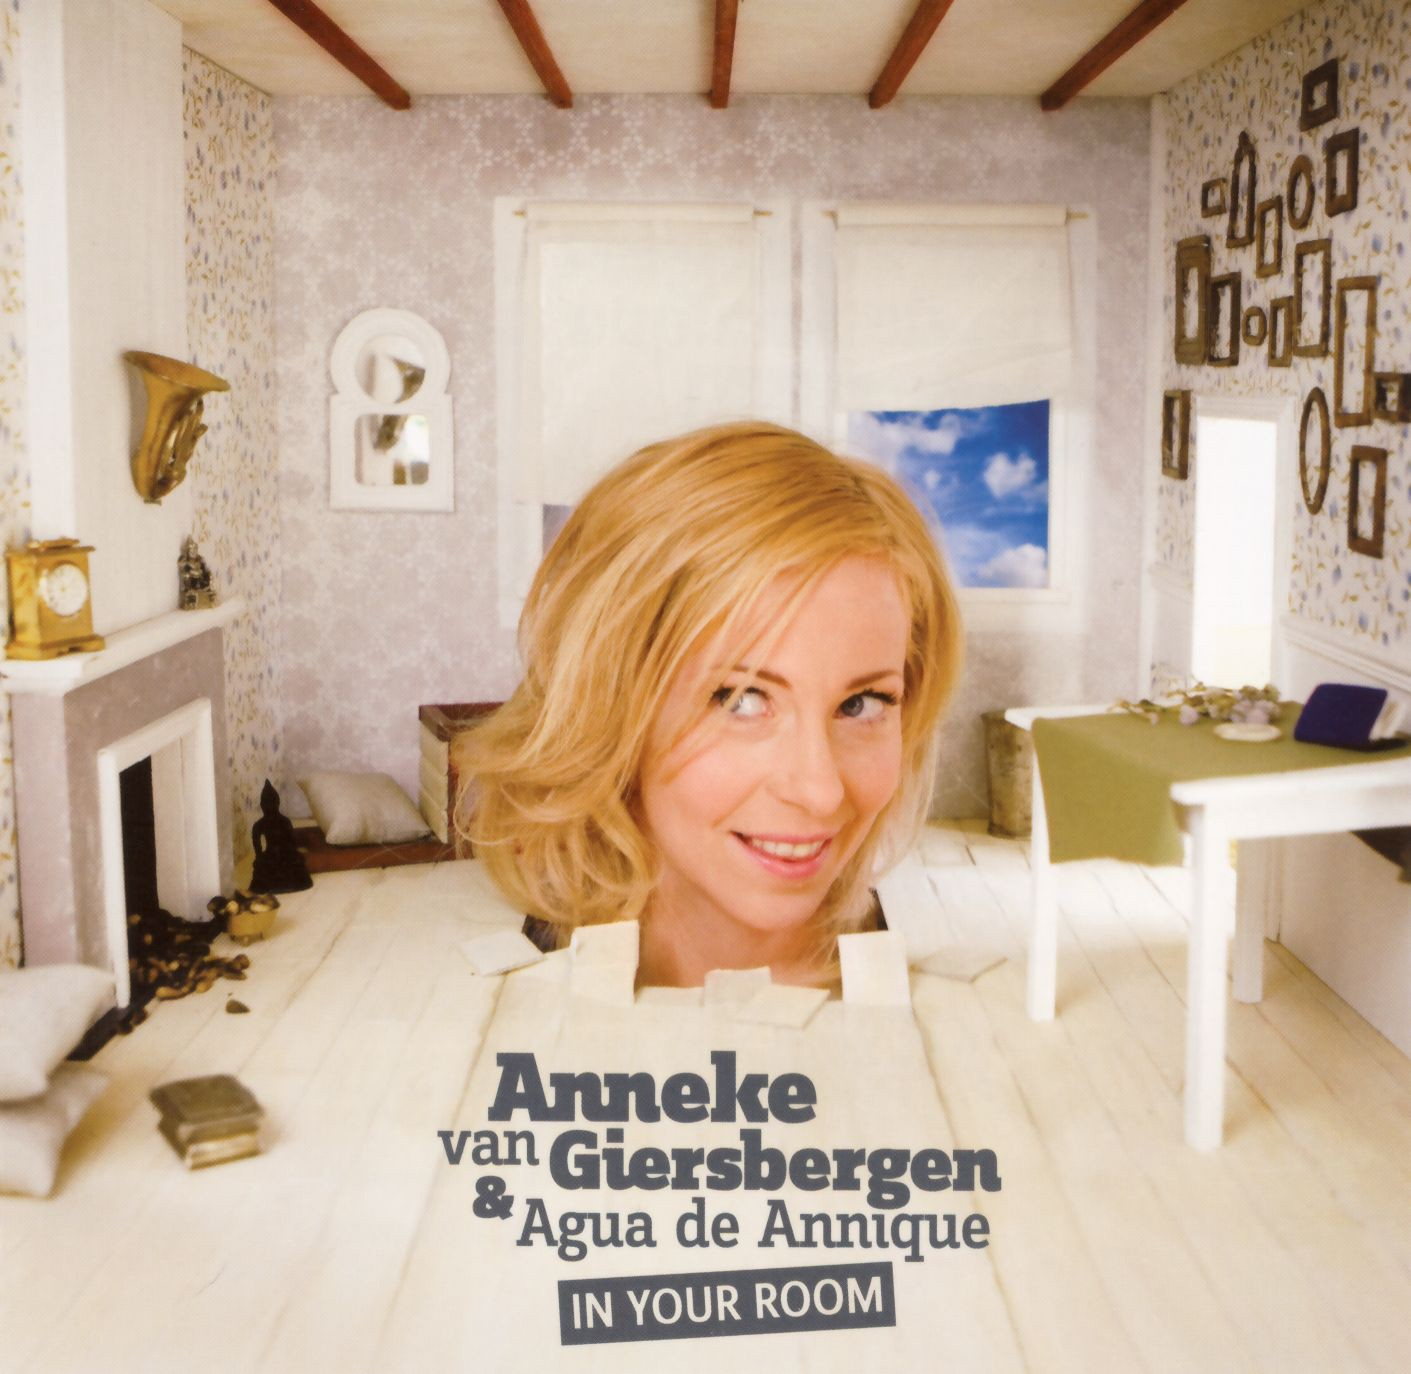 Anneke van Giersbergen & Agua de Annique – In Your Room